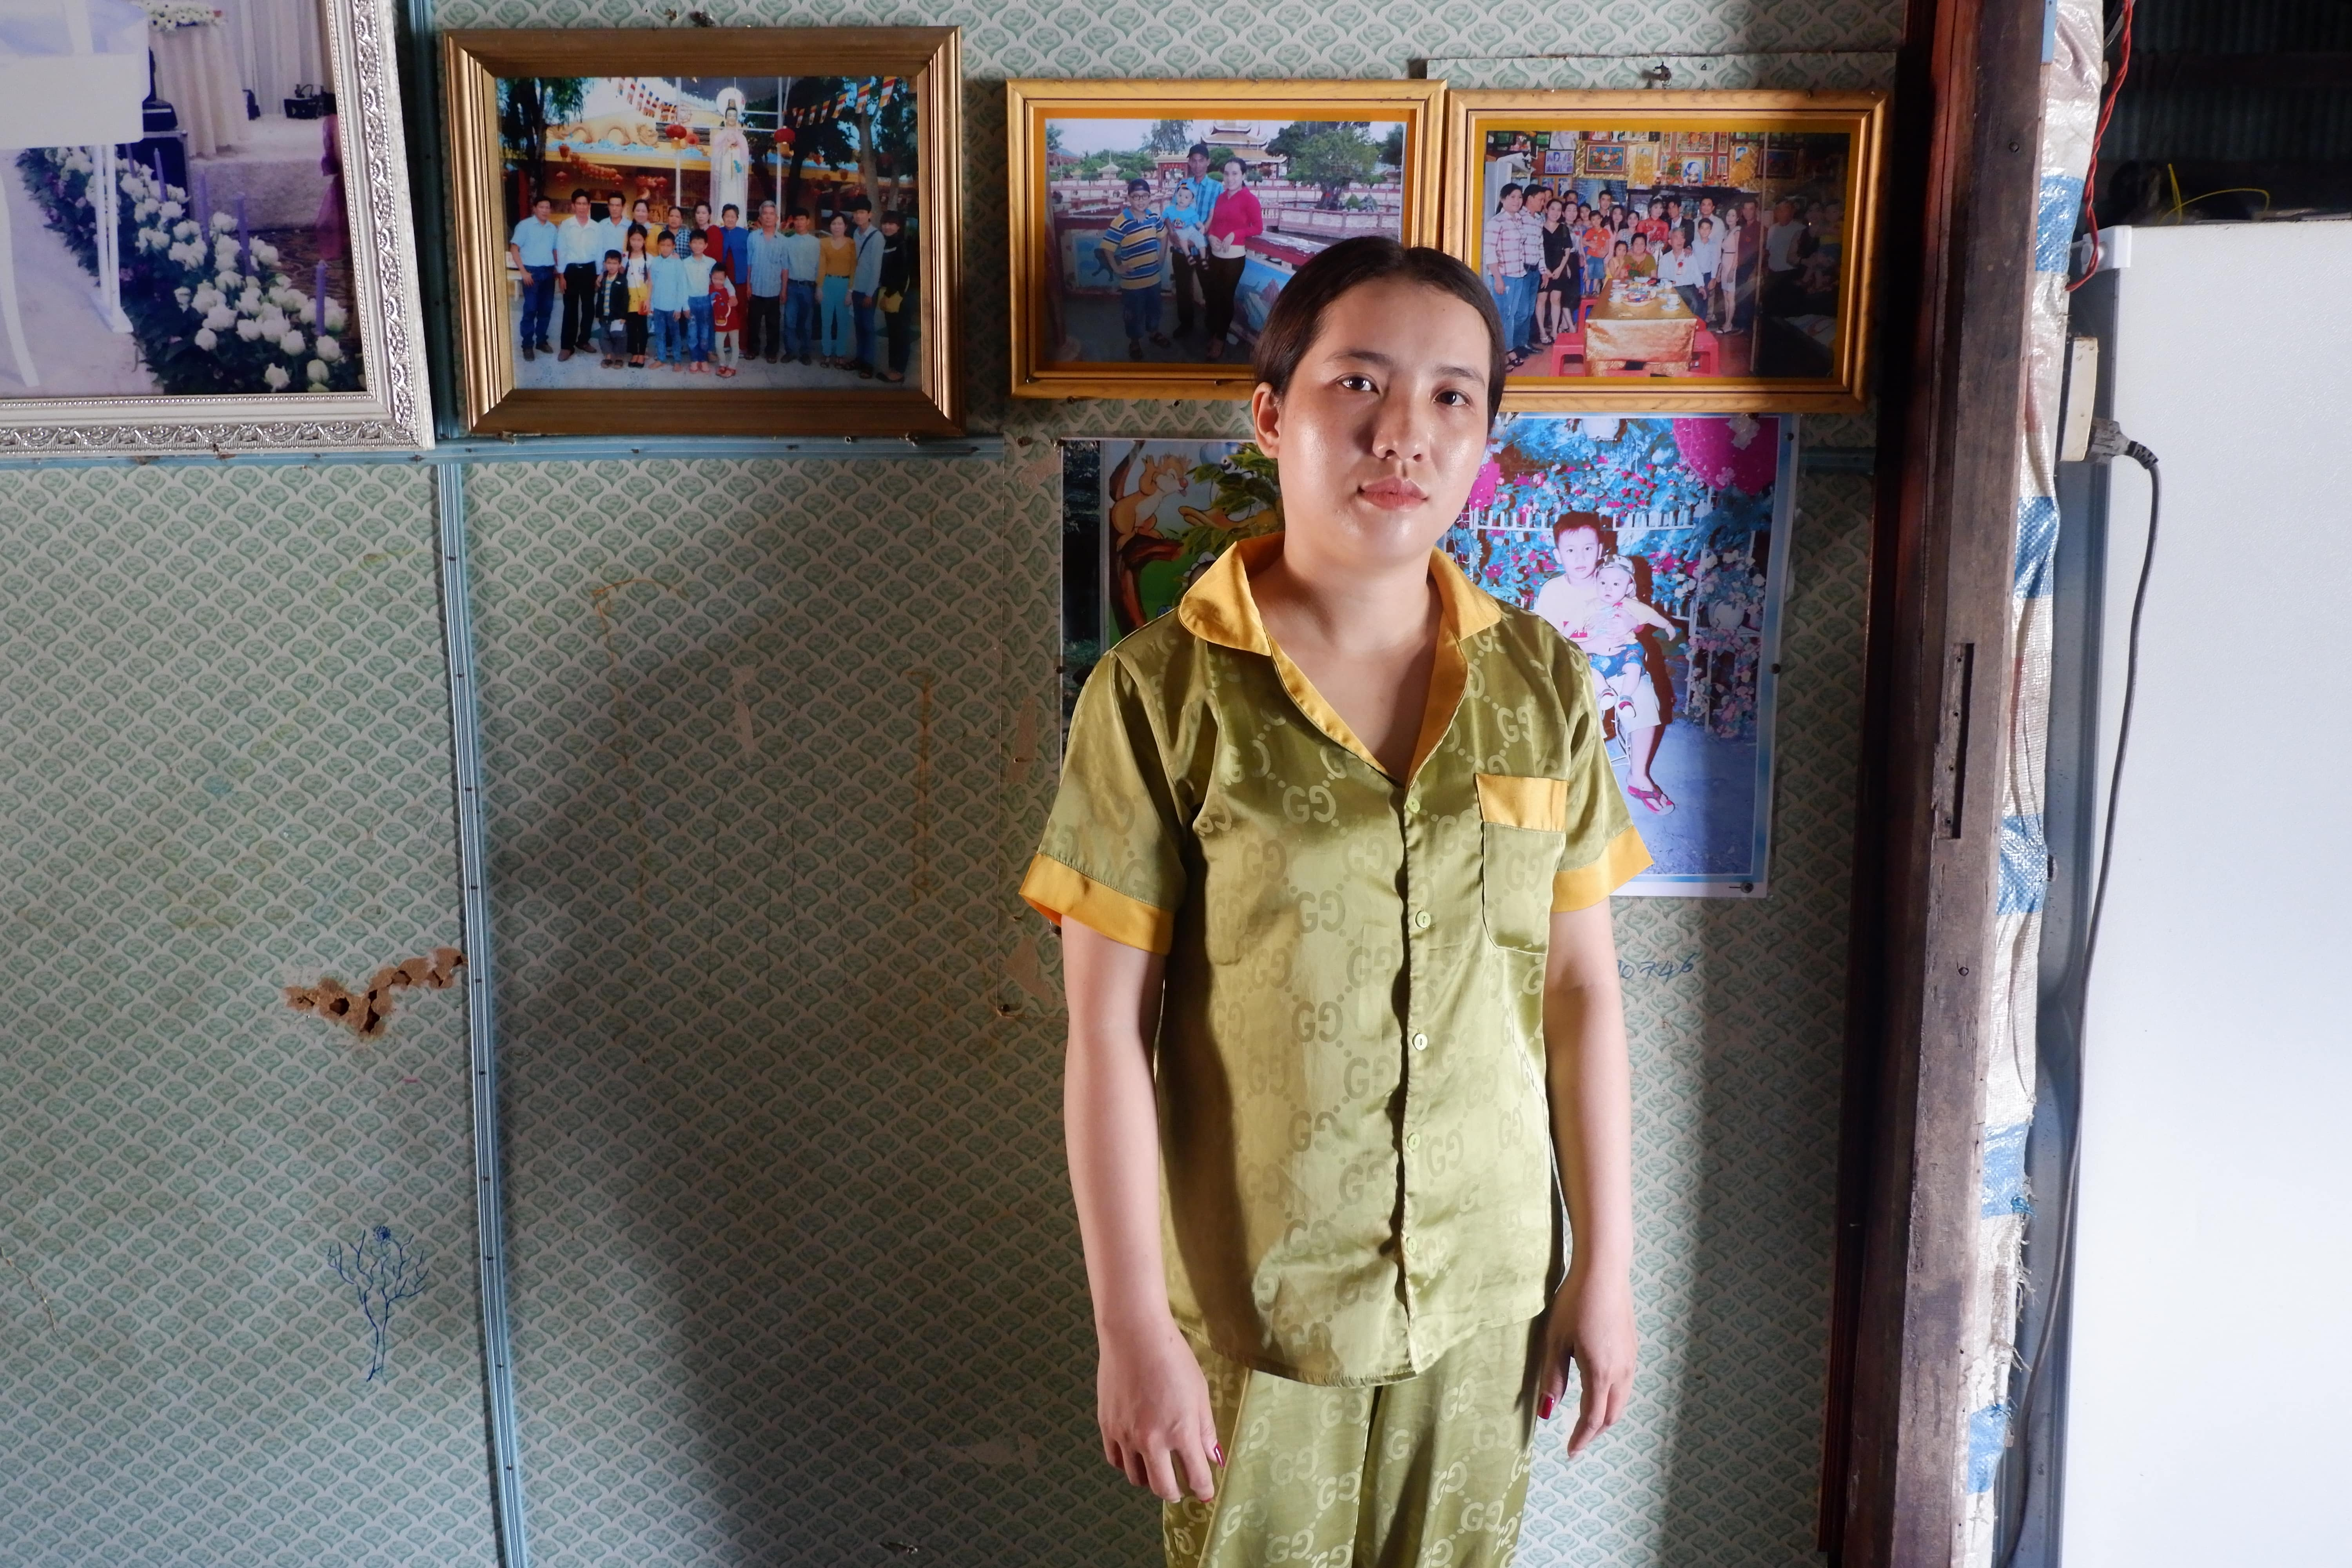 Dinh Thi Thuy Hang, Huy's wife. Behind Hang are her family photos. At that time, she was waiting in vain for her husband's return. Photo / Vo Kieu Bao Uyen